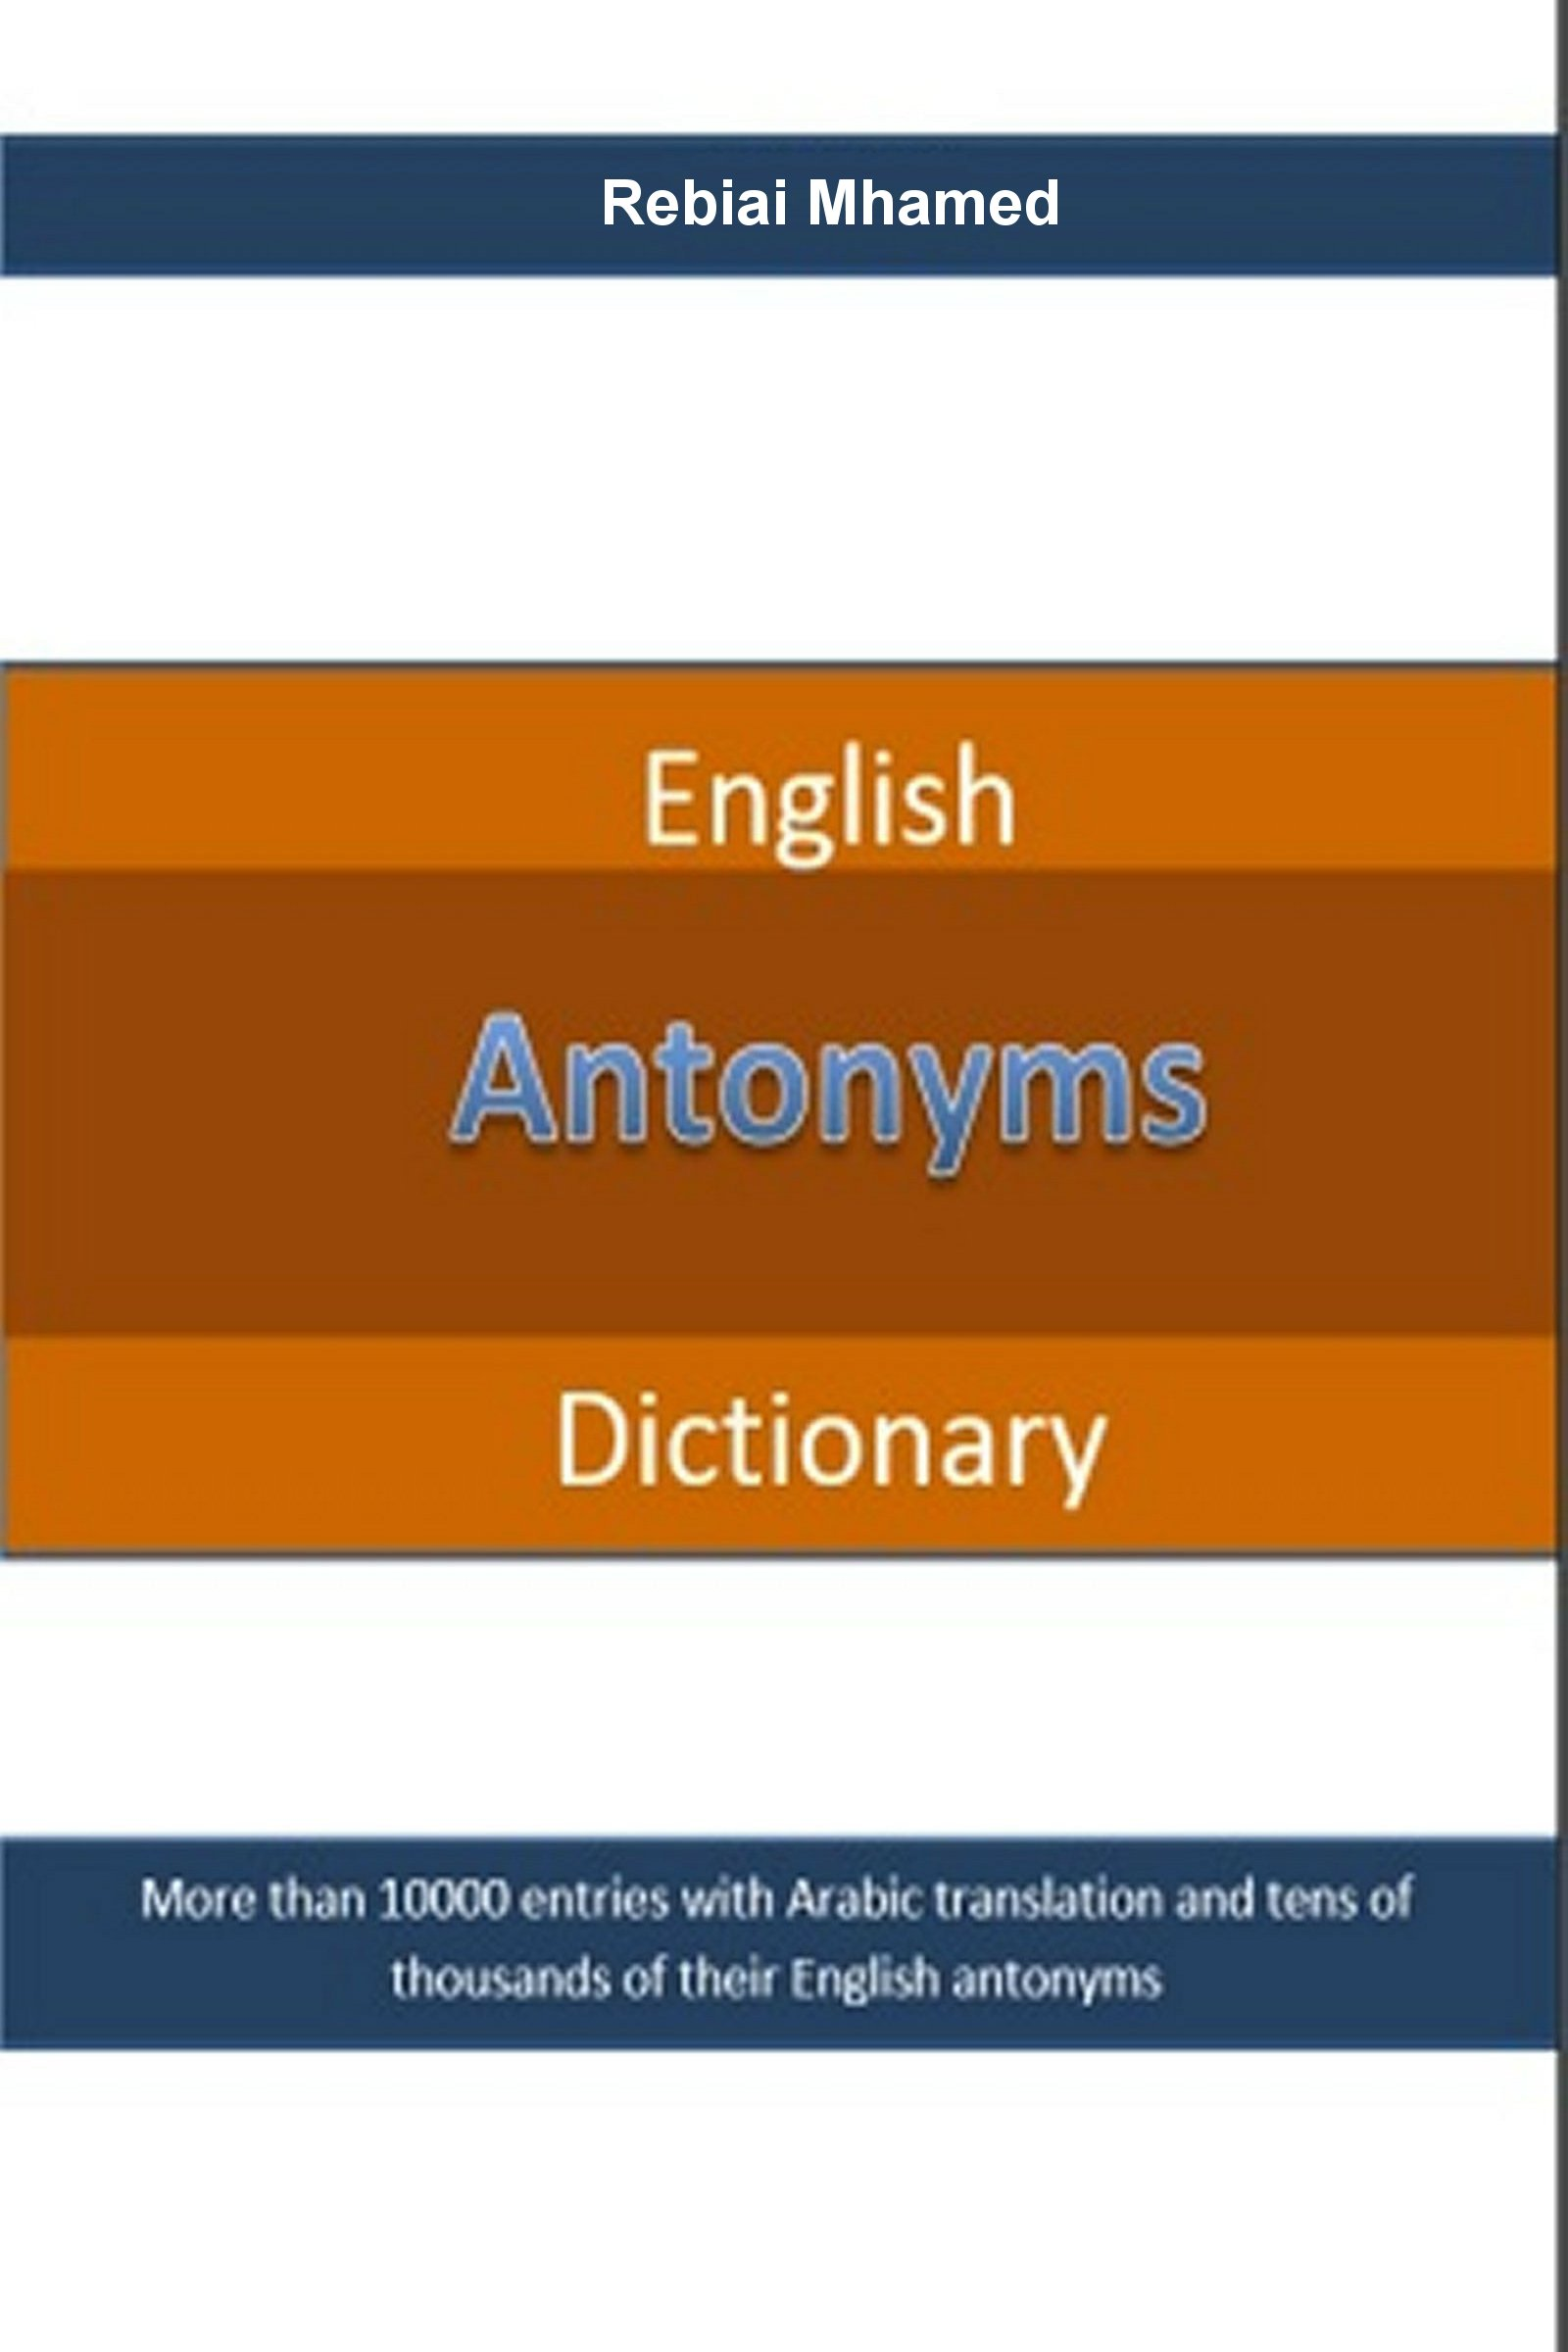 English Antonyms Dictionary, an Ebook by Rebiai Mhamed